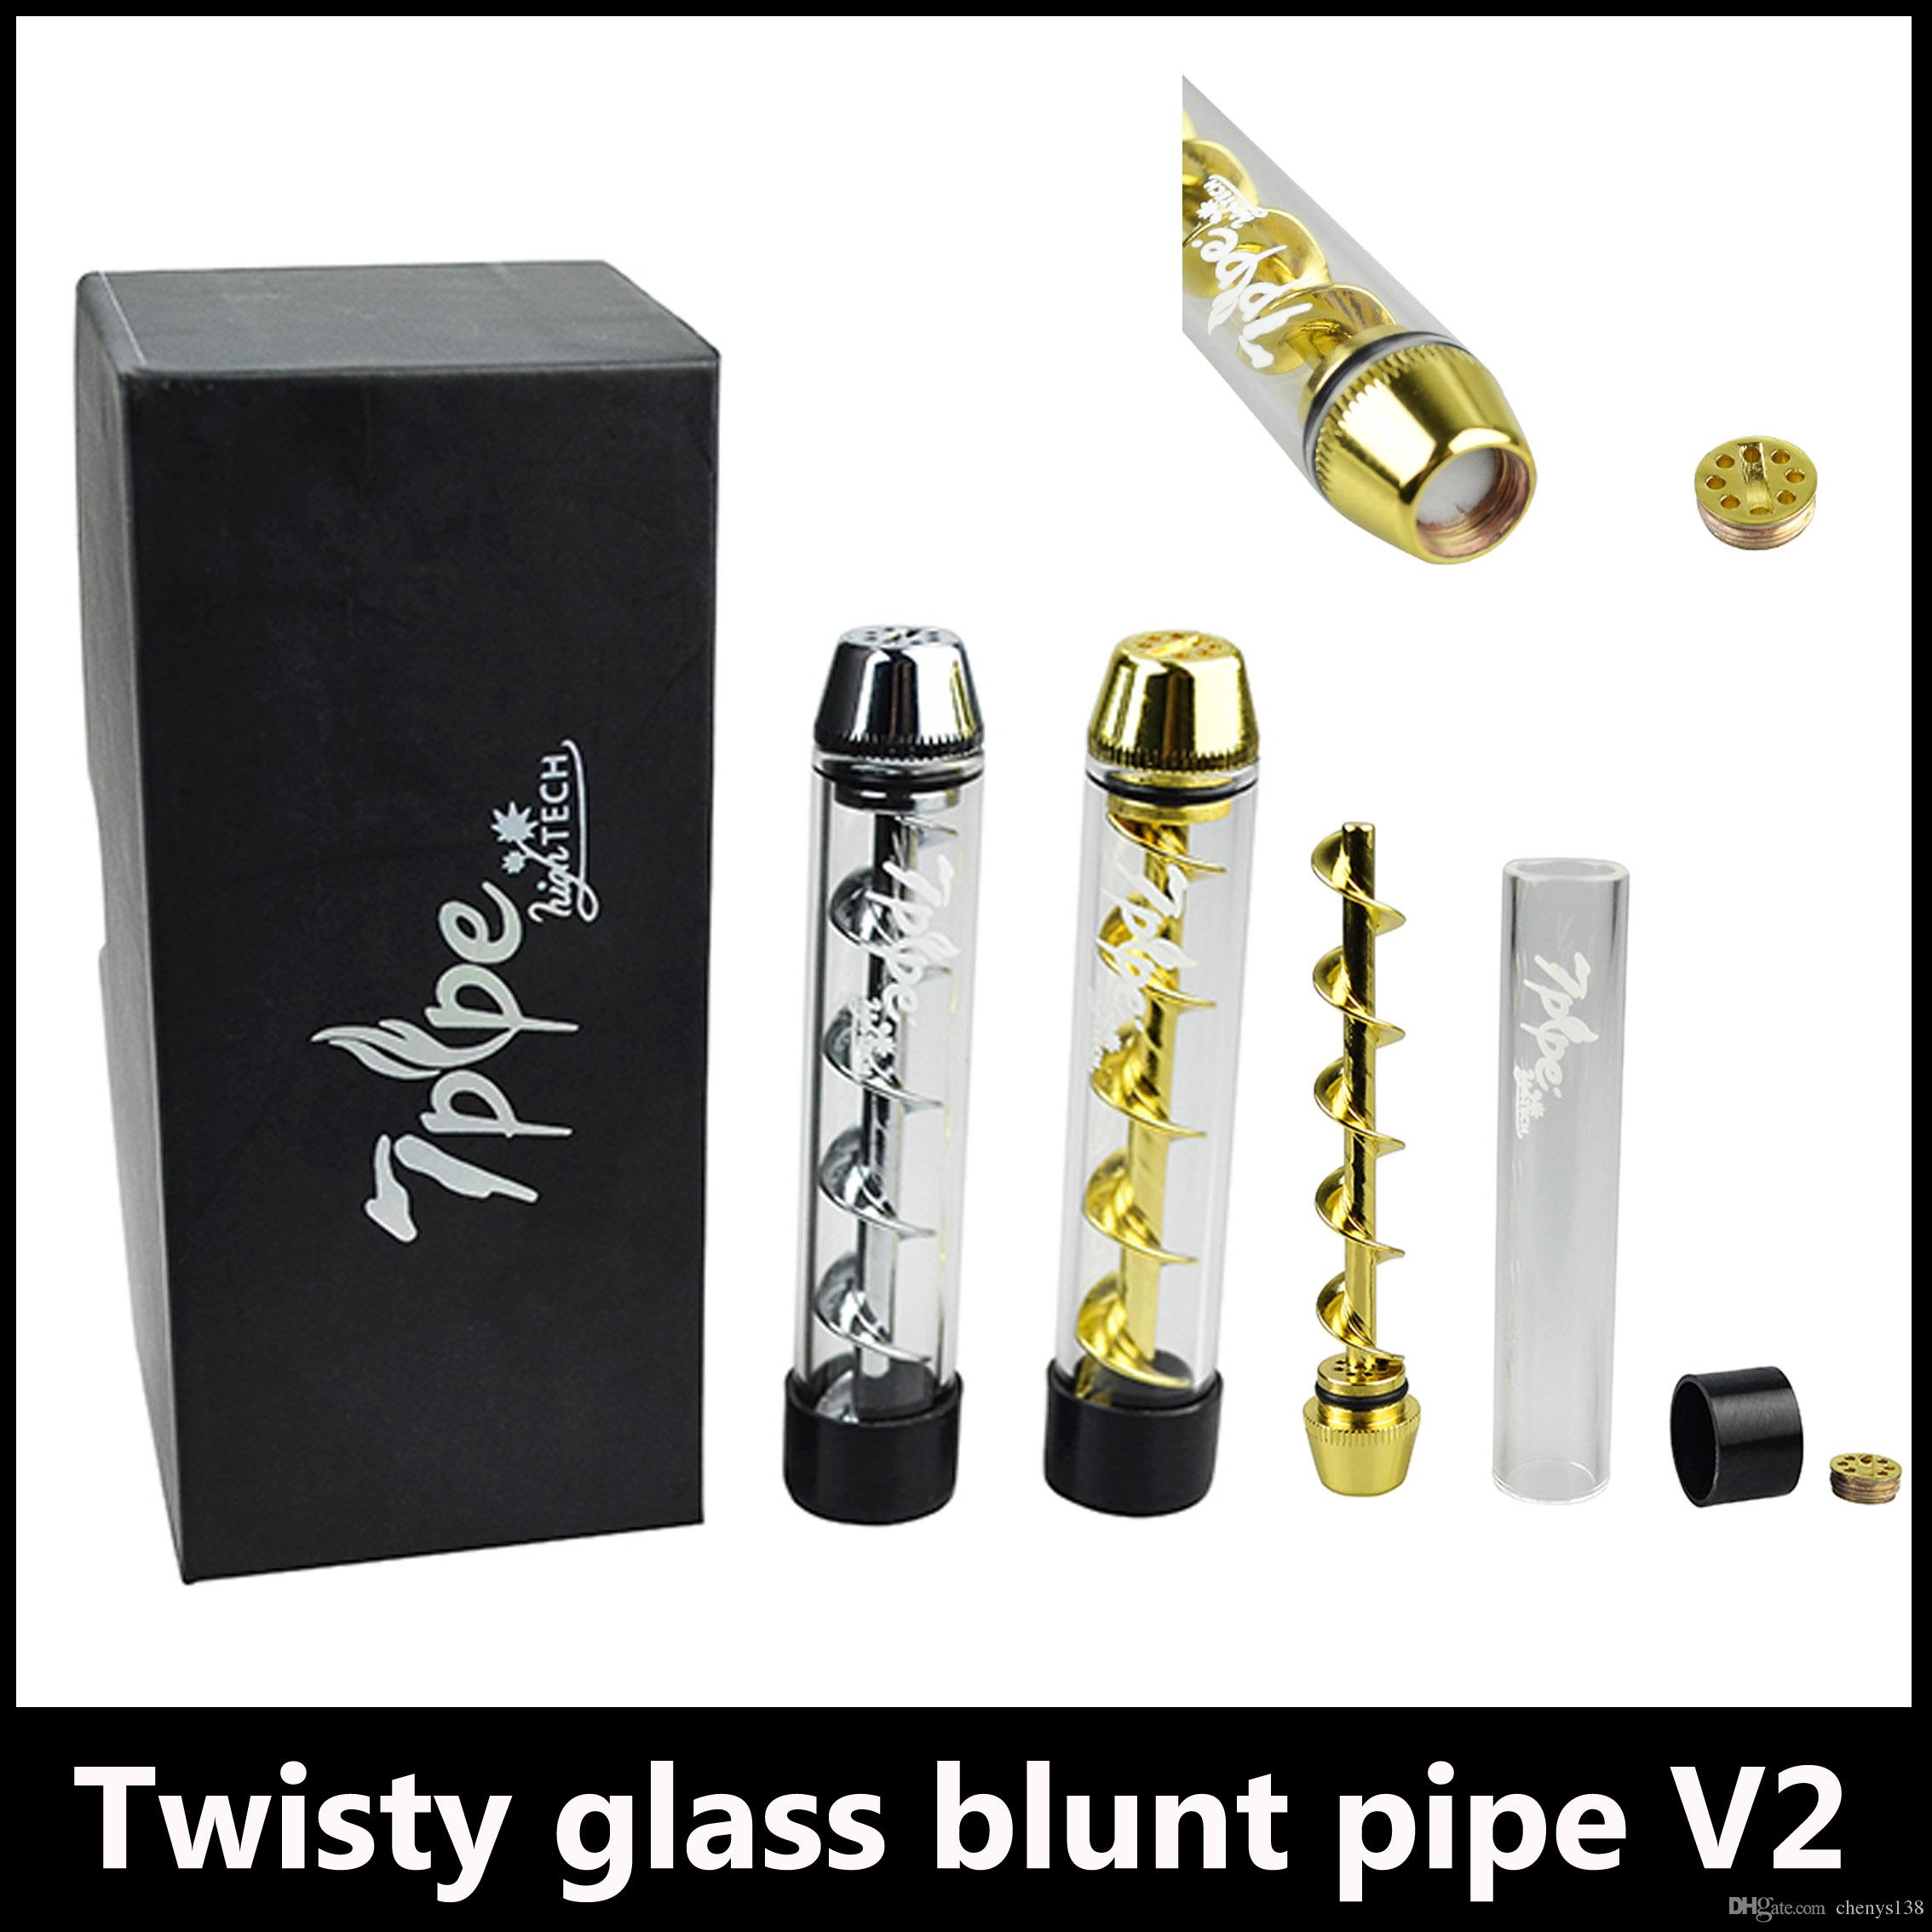 Cheap herbal vaporizers - Newest Twisty Glass Blunt Pipe V2 Kit Herbal Vapor Dry Herb Vaporizer The Mouth Piece Can Replacemen Pen Twist Me Vapor 5 Colors